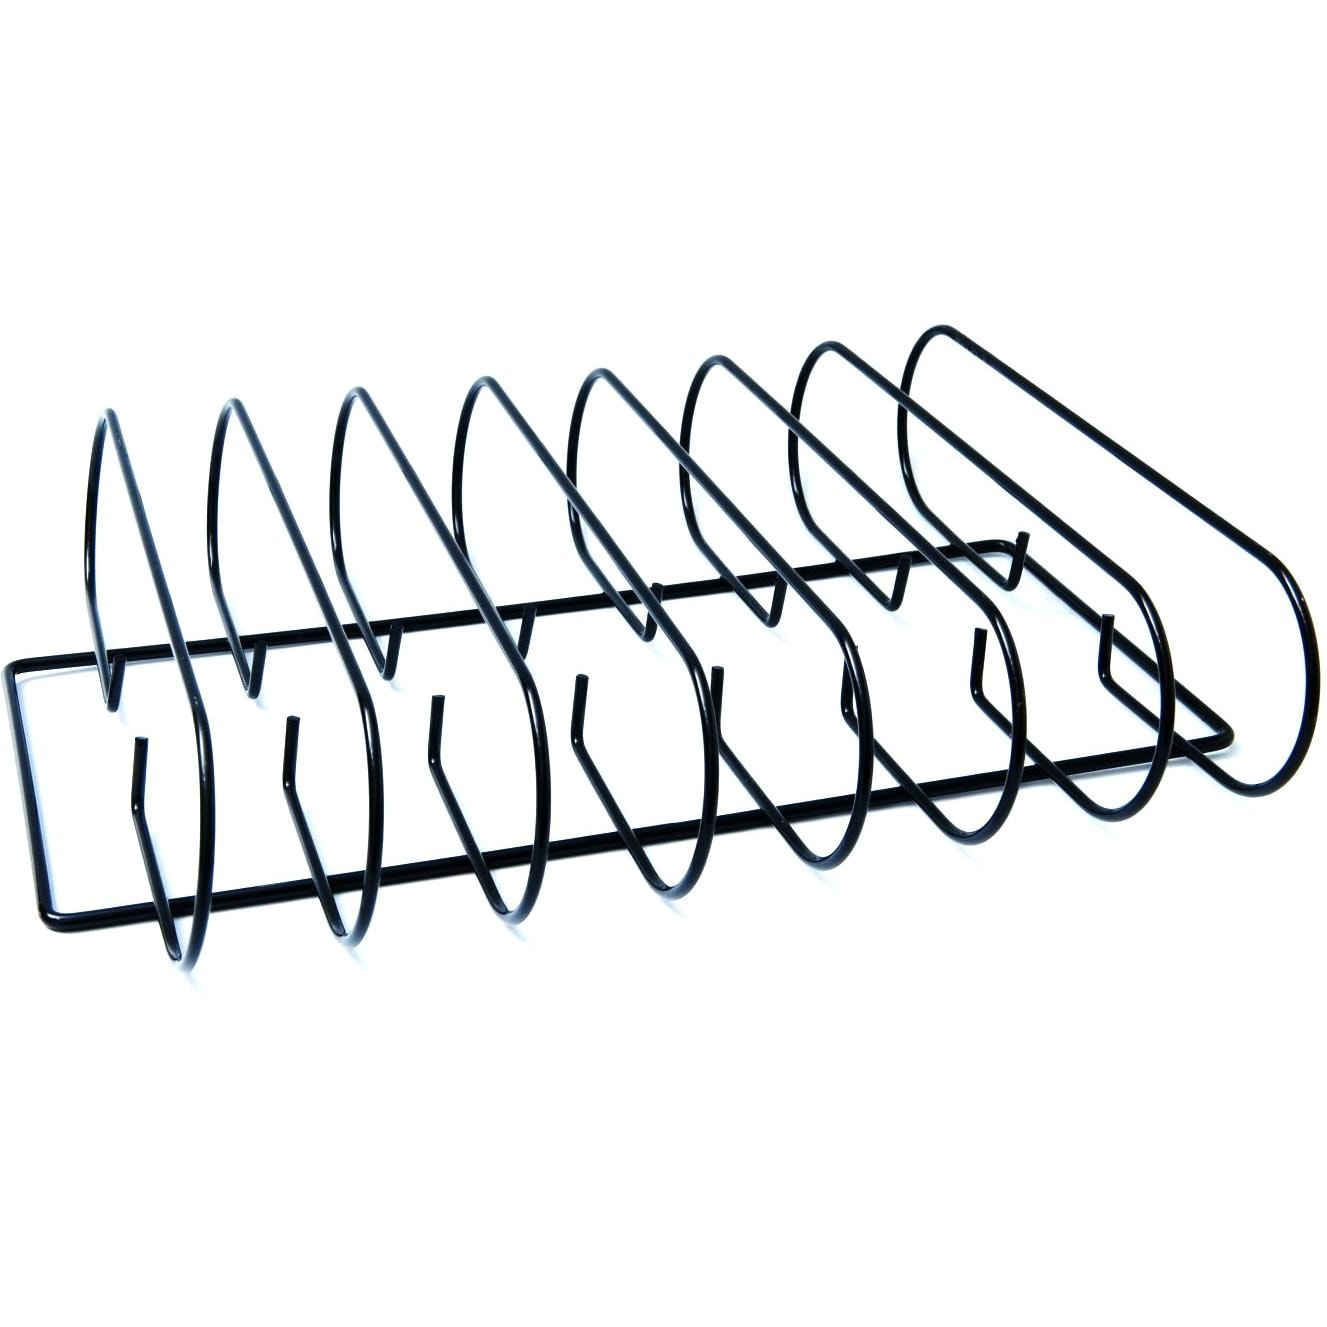 Man-Law 11 X 14 Inch Non-Stick Stainless Steel BBQ Rib Rack